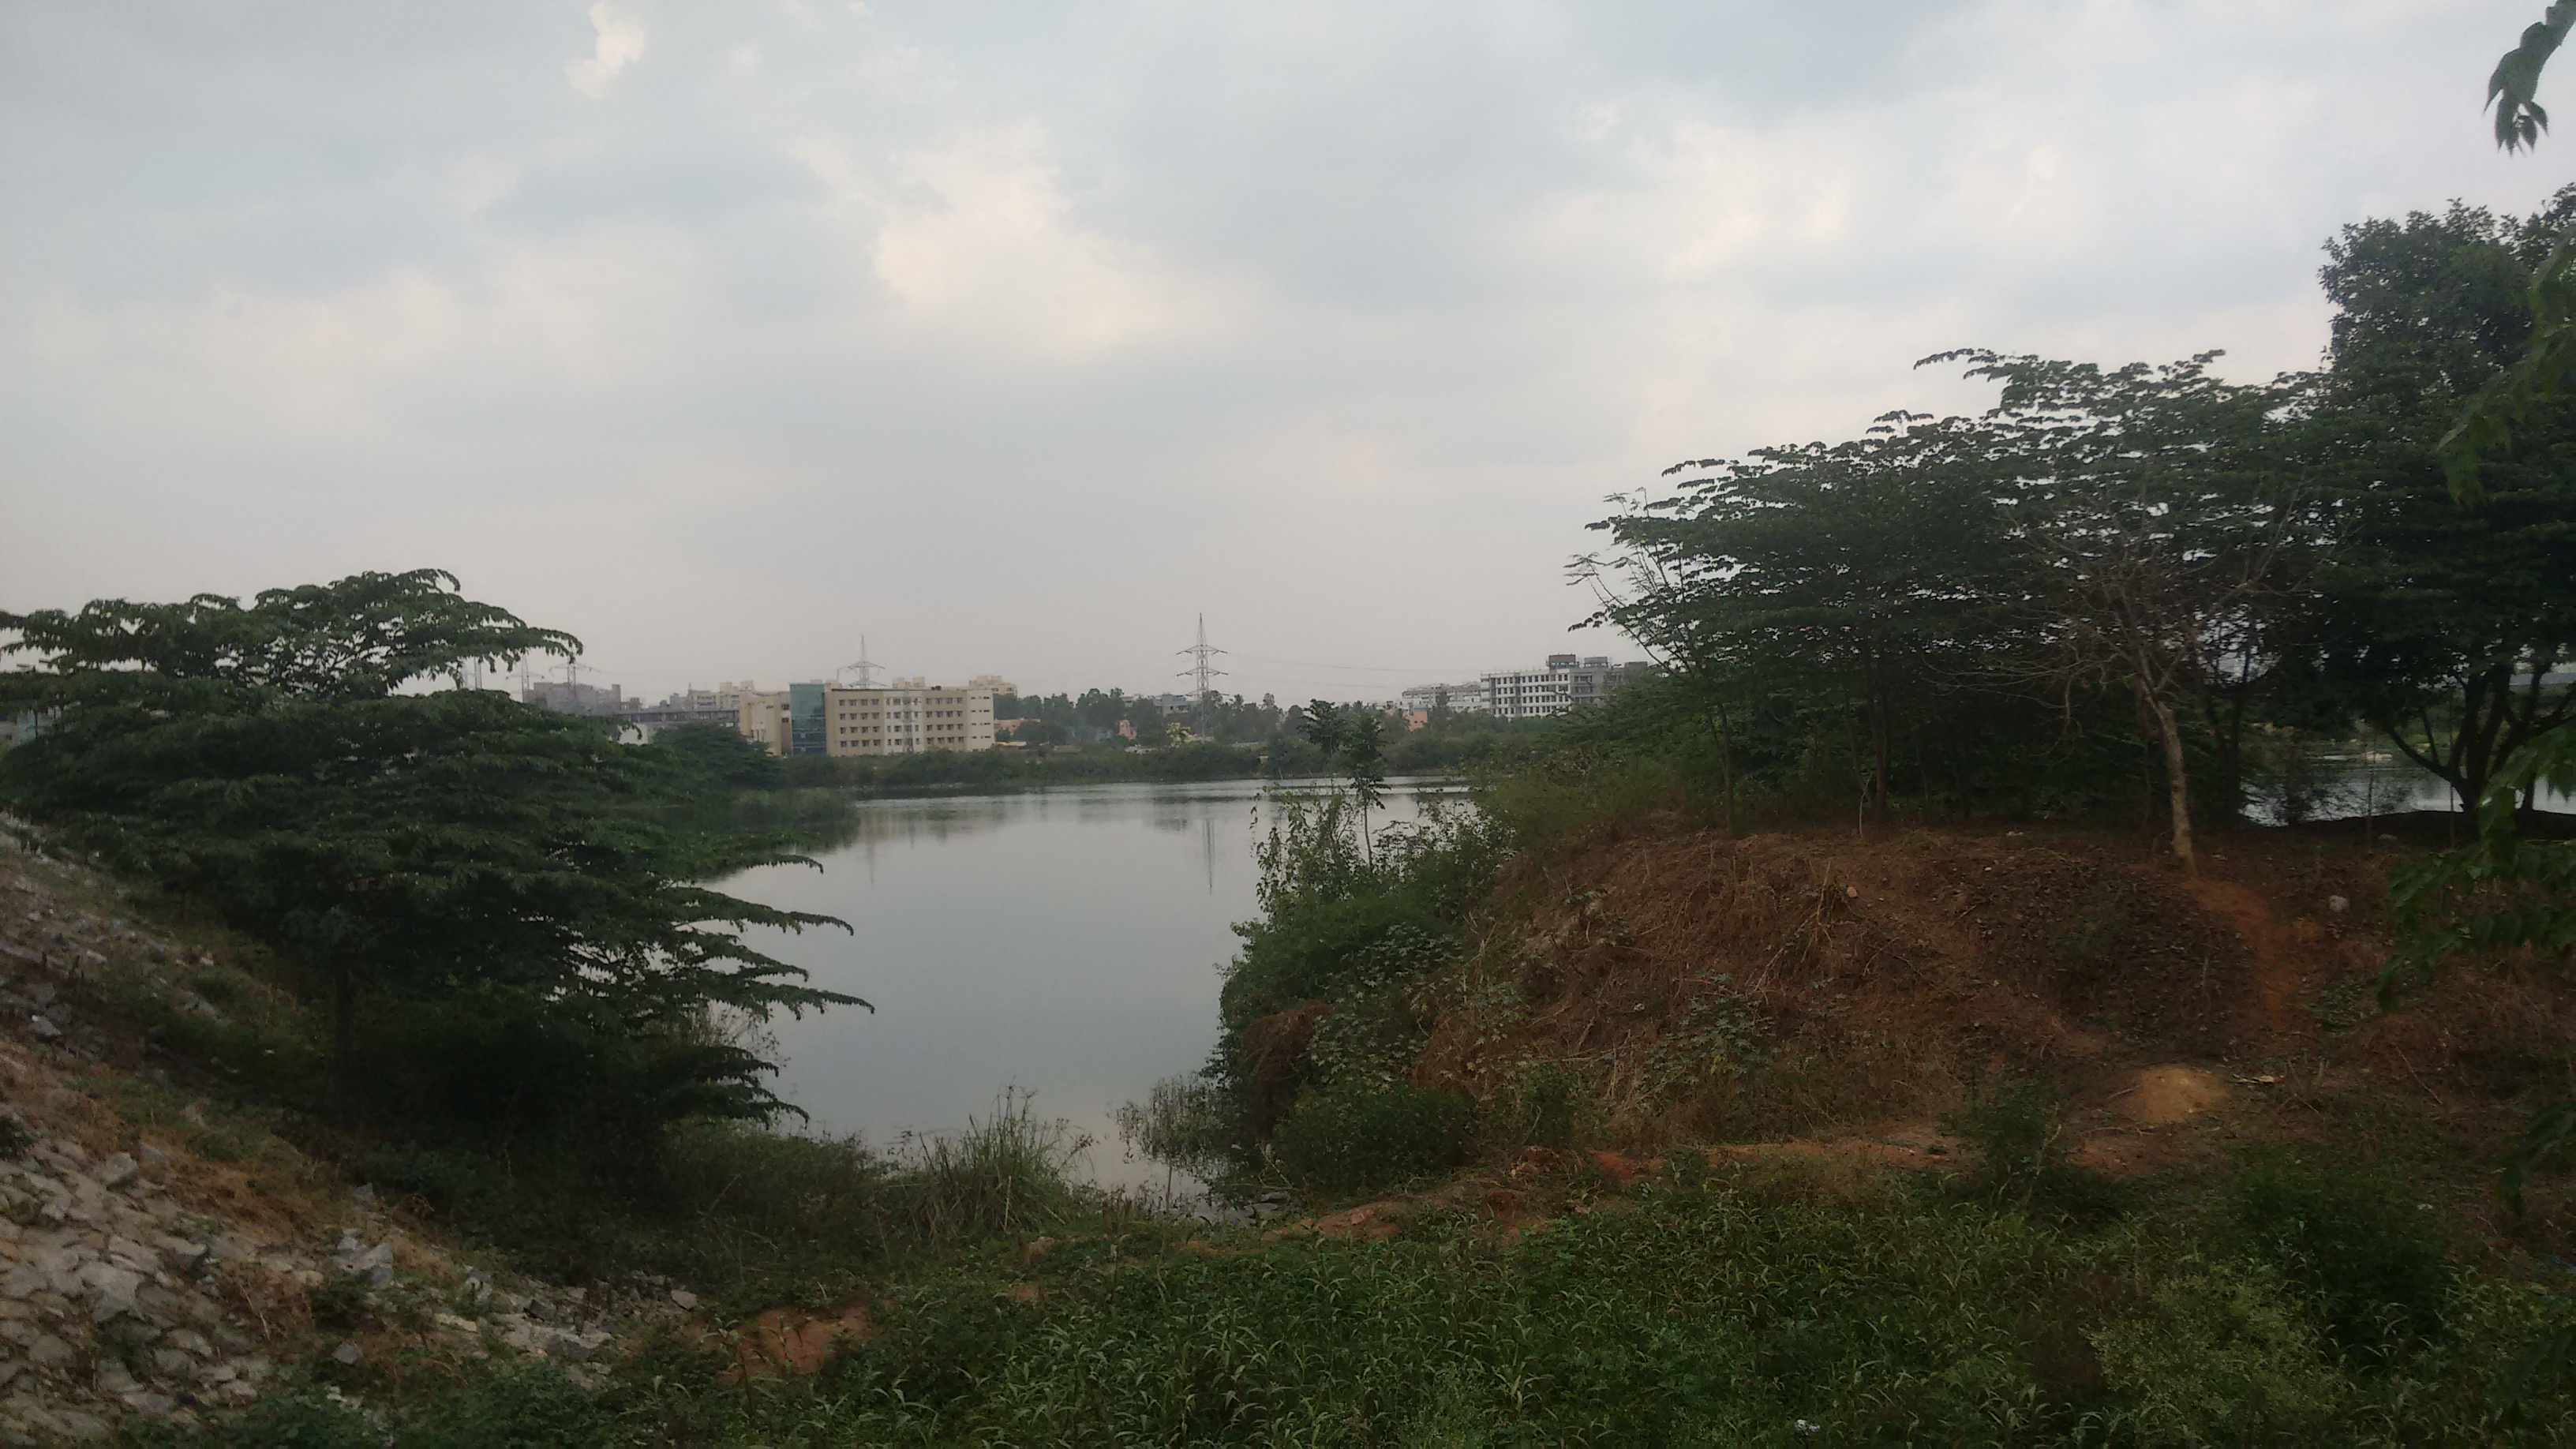 Seetarampalya lake, restored and maintained by the Brigade Group